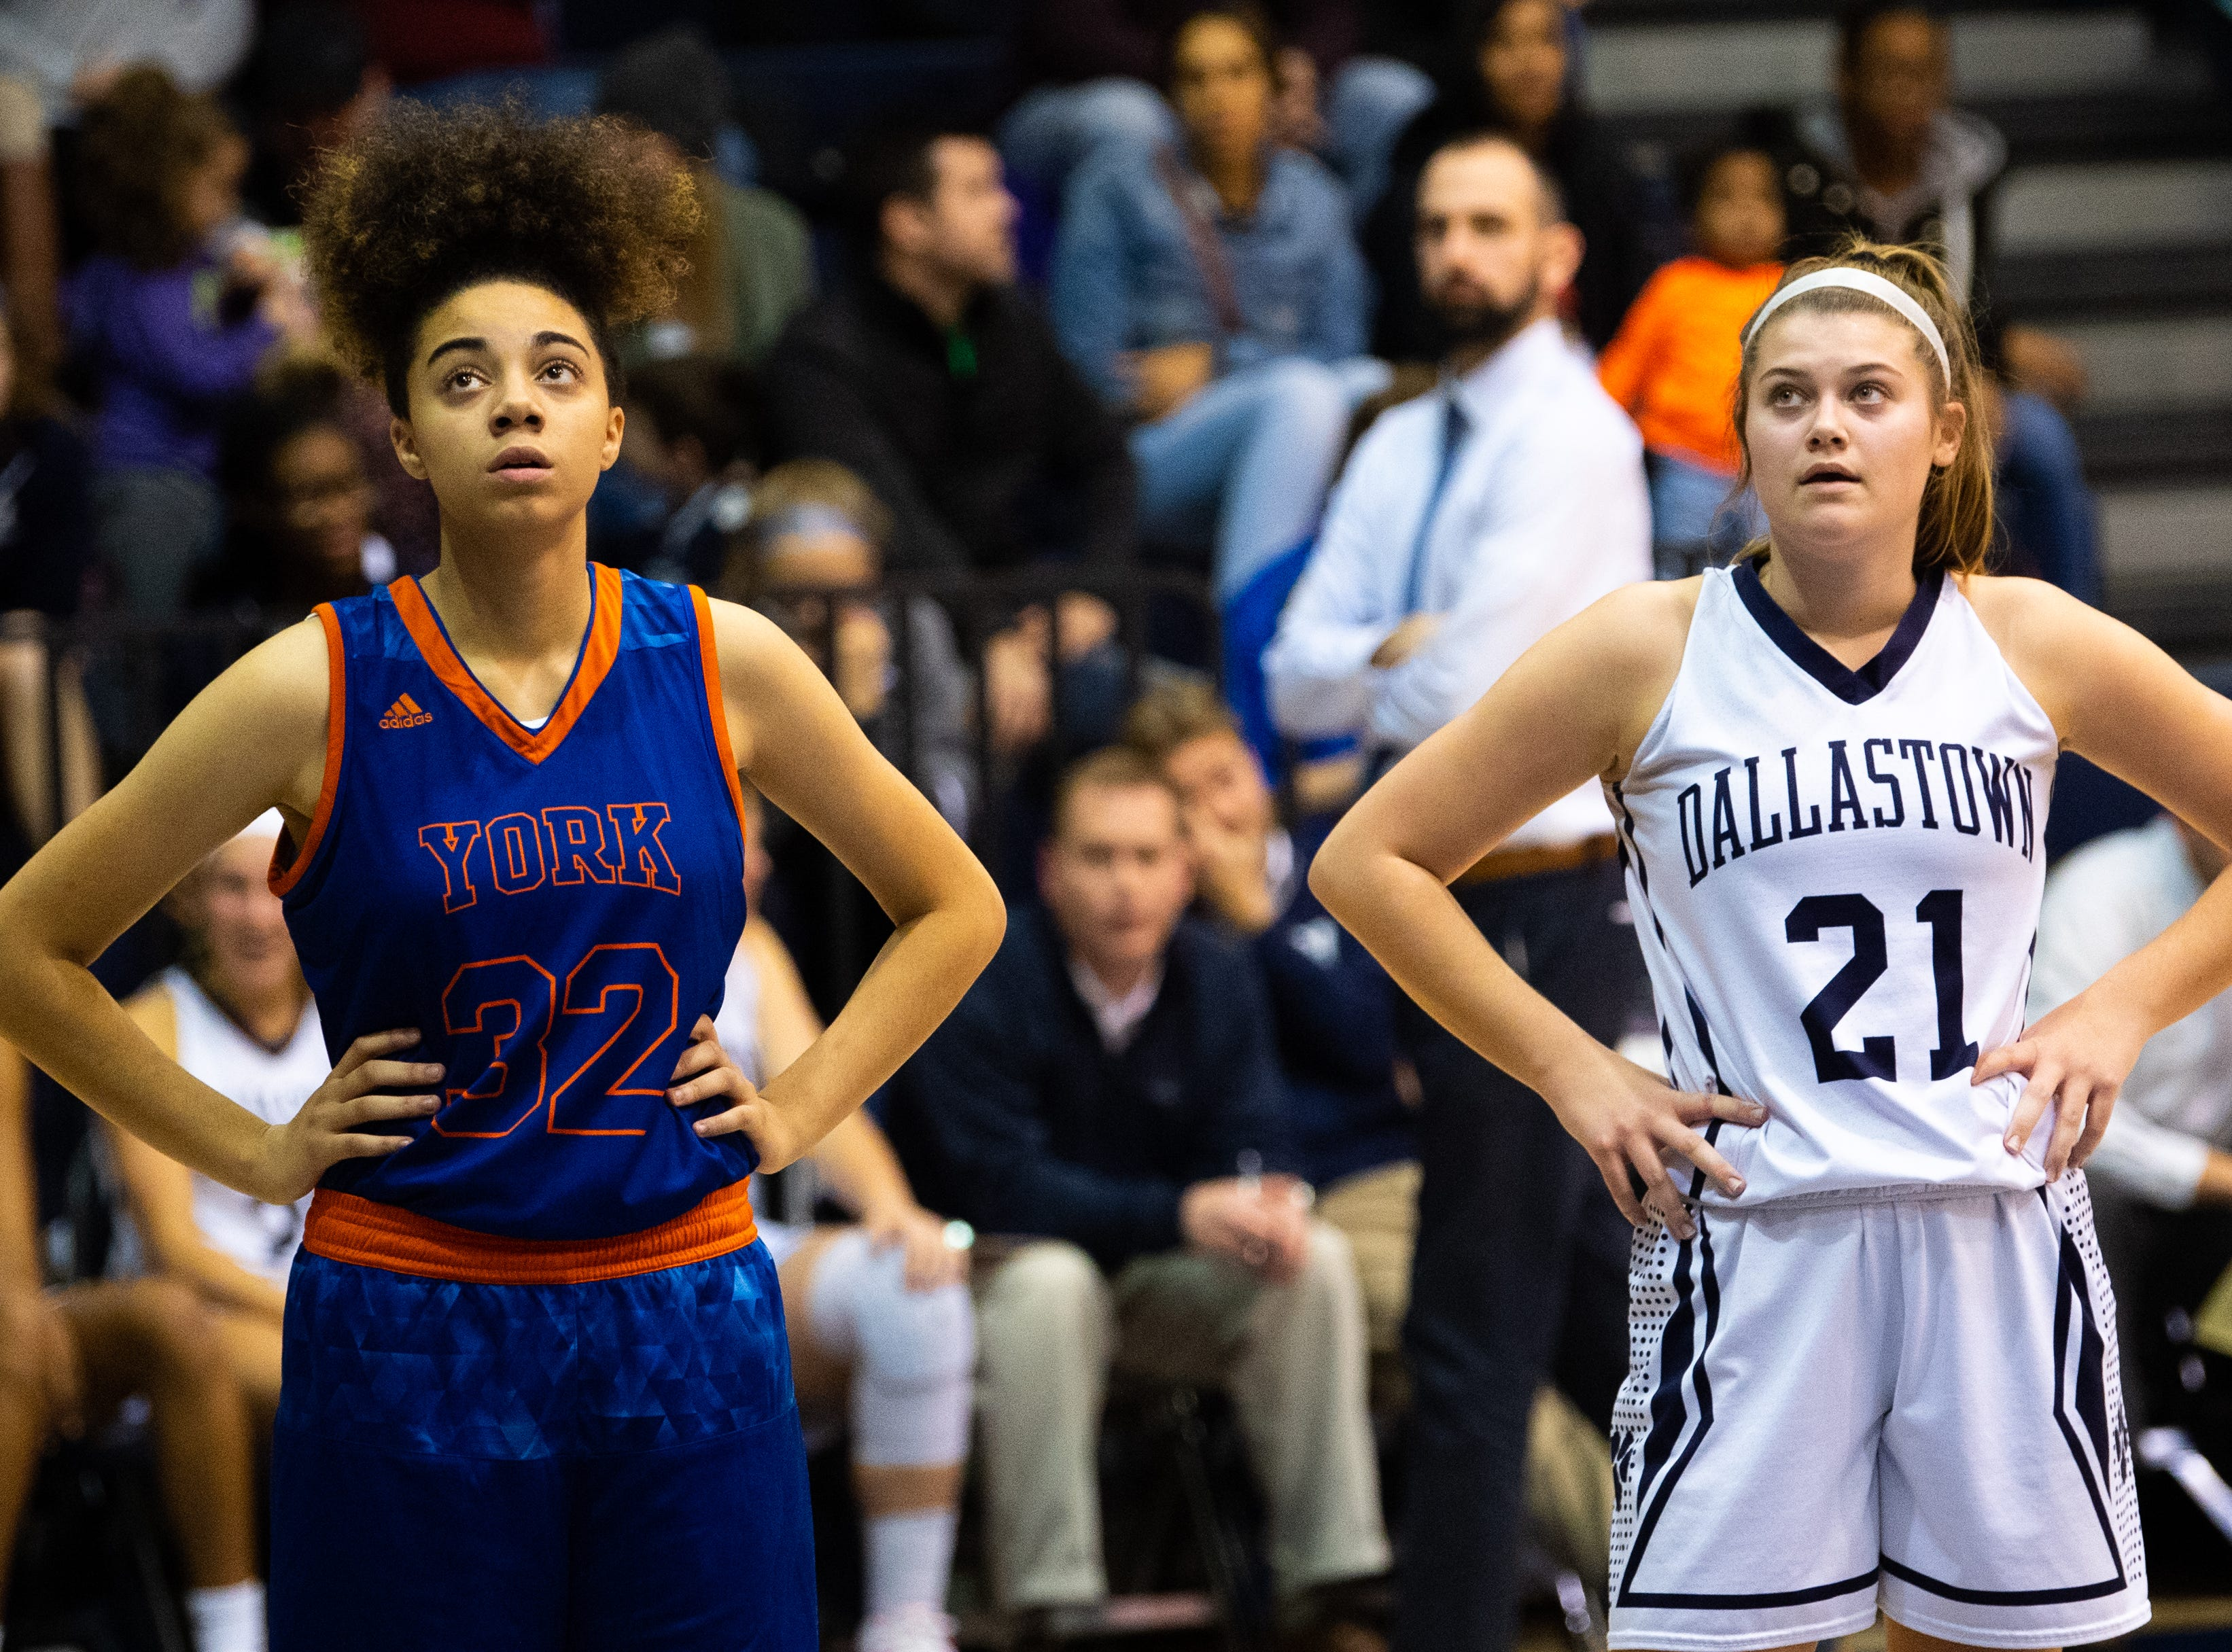 Madi Moore (21) and Tyler (32) watch as a free throw is shot during the girls' basketball game between Dallastown and York High at Dallastown High School, December 14, 2018. The Wildcats defeated the Bearcats 62-31.